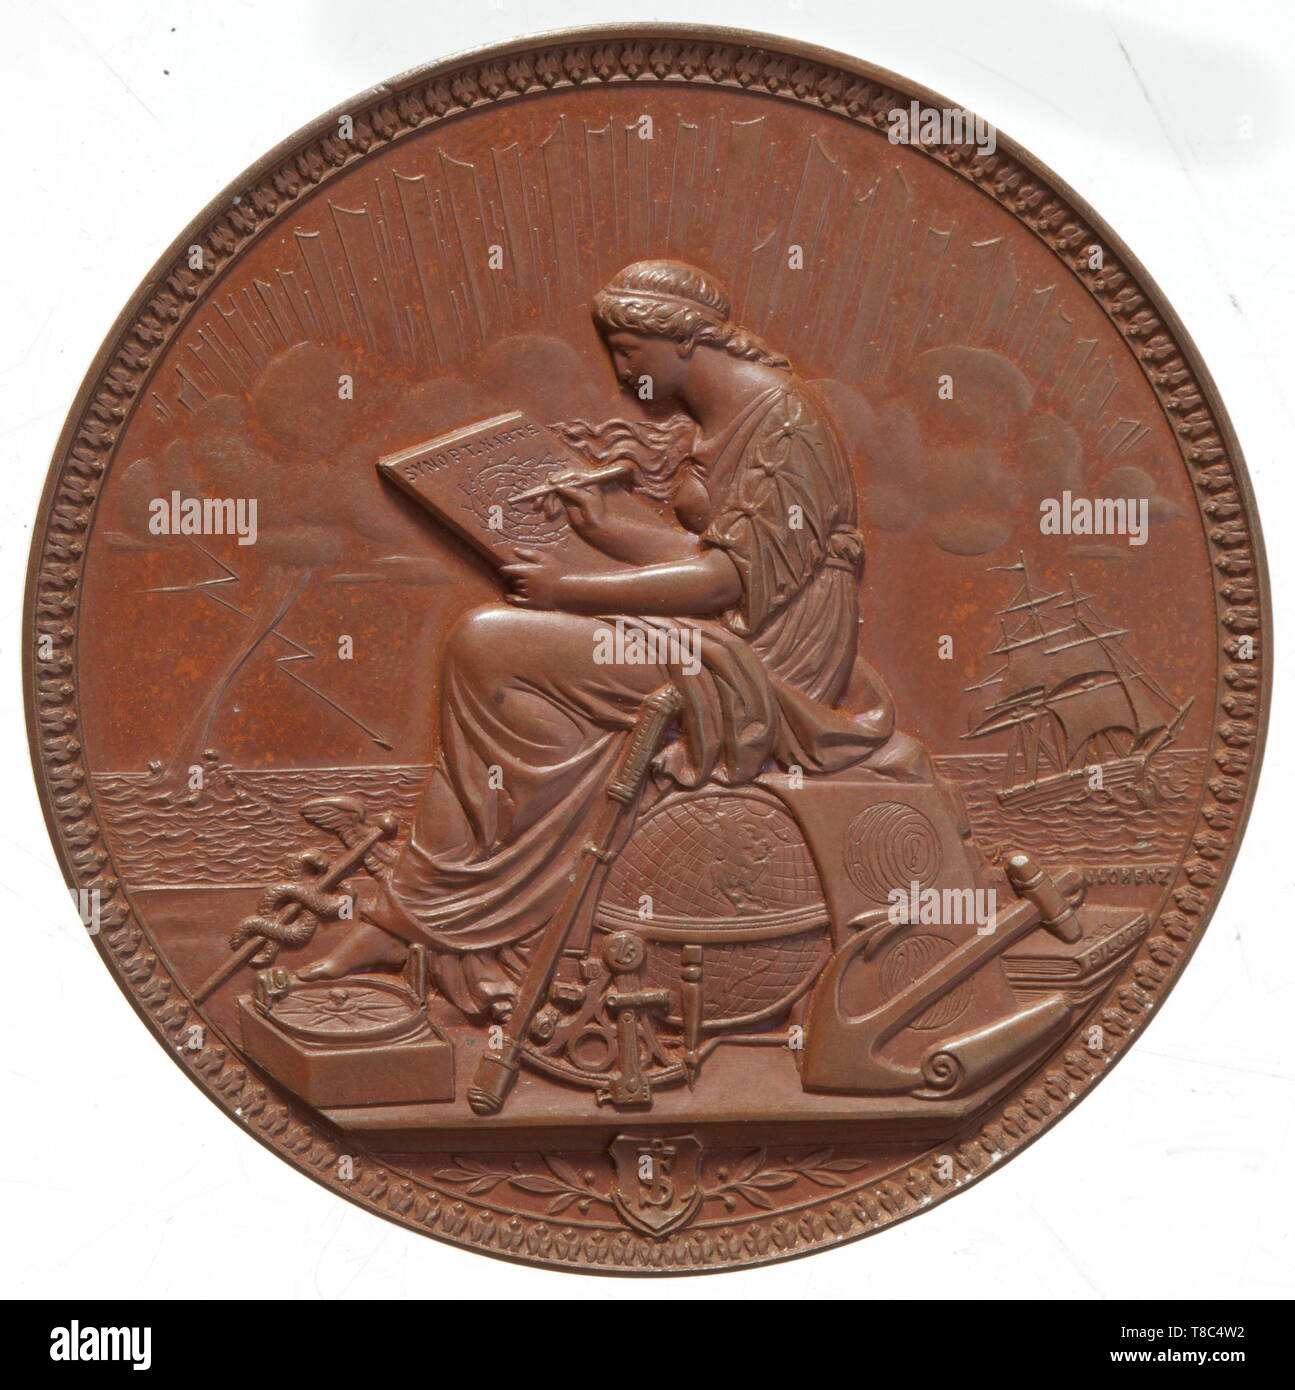 A bronze medal German hydrographic office and certificate For Captain Dietrich H. Brummer. Awarded on 1 December 1909. Bronze medal, diameter 5.7 cm with a depiction of the office and surrounding inscription (tr) 'From the German hydrographic office to its staff at sea. Donated on the day of its opening in Sept. 1881', artist's signature 'J. Lorenz, F. Hamburg'. Back with an image of (tr) 'At Sea'. In corresponding case. Including certificate, framed ca. 55 x 48 cm. The certificate 'Imperial Navy - German hydrographic office' with the director's , Additional-Rights-Clearance-Info-Not-Available - Stock Image